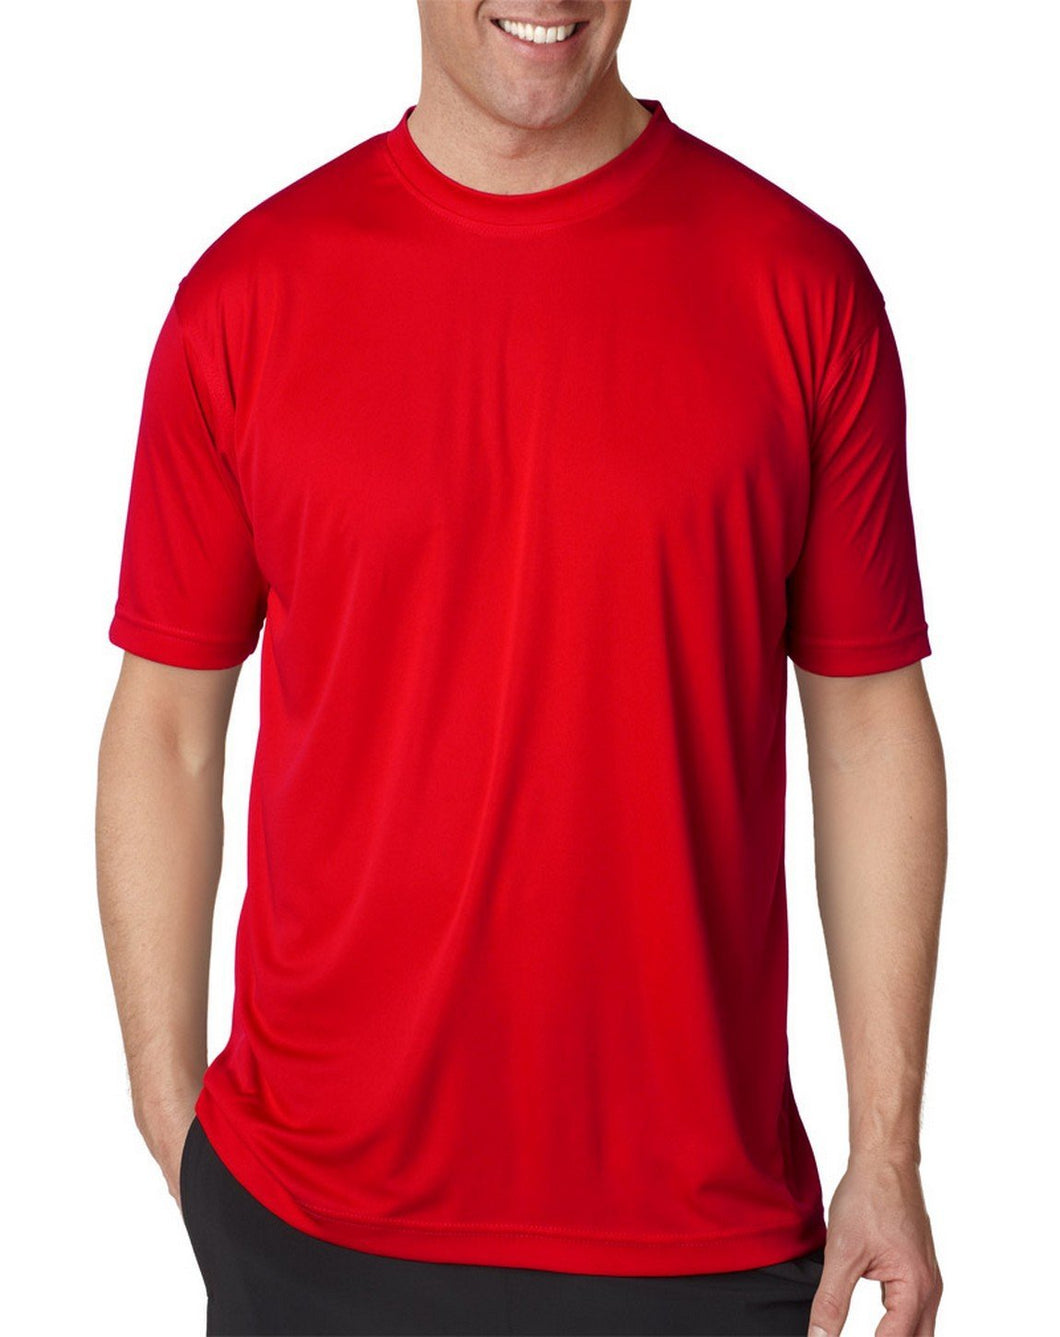 DryFit Athletic Interlock Tee READY FOR YOUR Text Cedar Hill Country Market